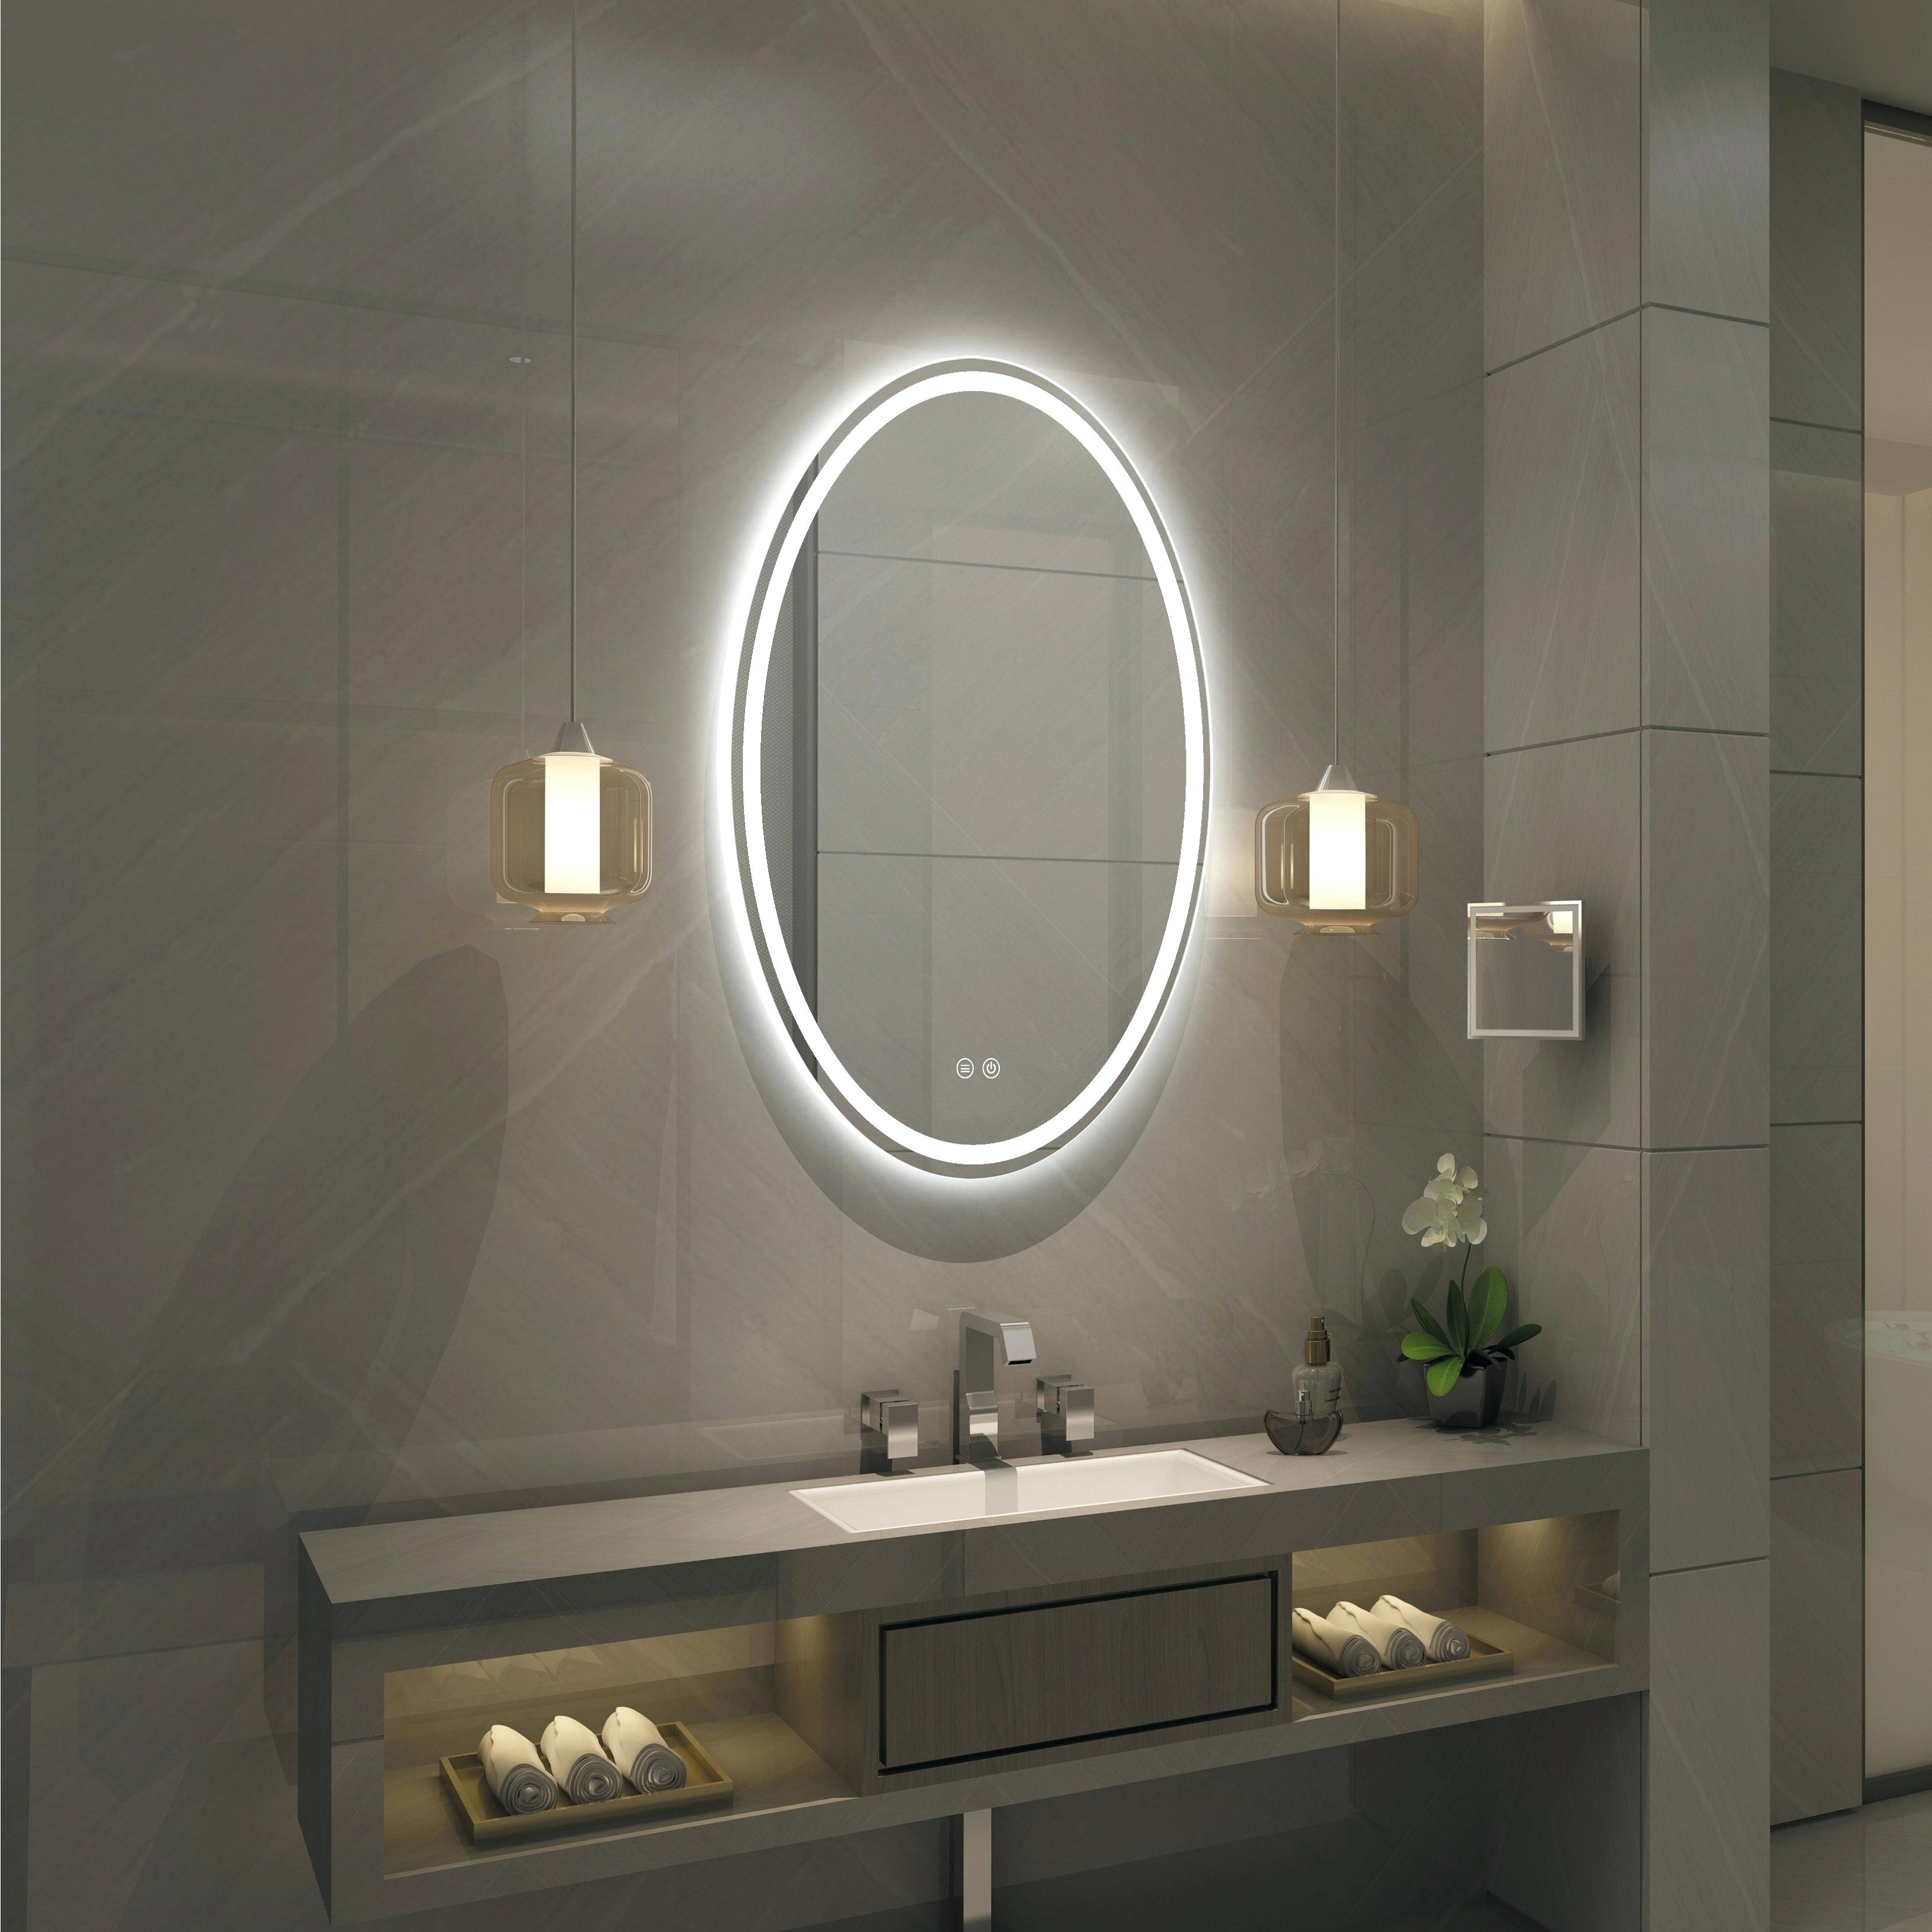 Well Liked Illuminated Wall Mirrors For Bathroom Throughout Illuminated Wall Mirrors For Bathroom – Jennaneumann.co (Gallery 17 of 20)